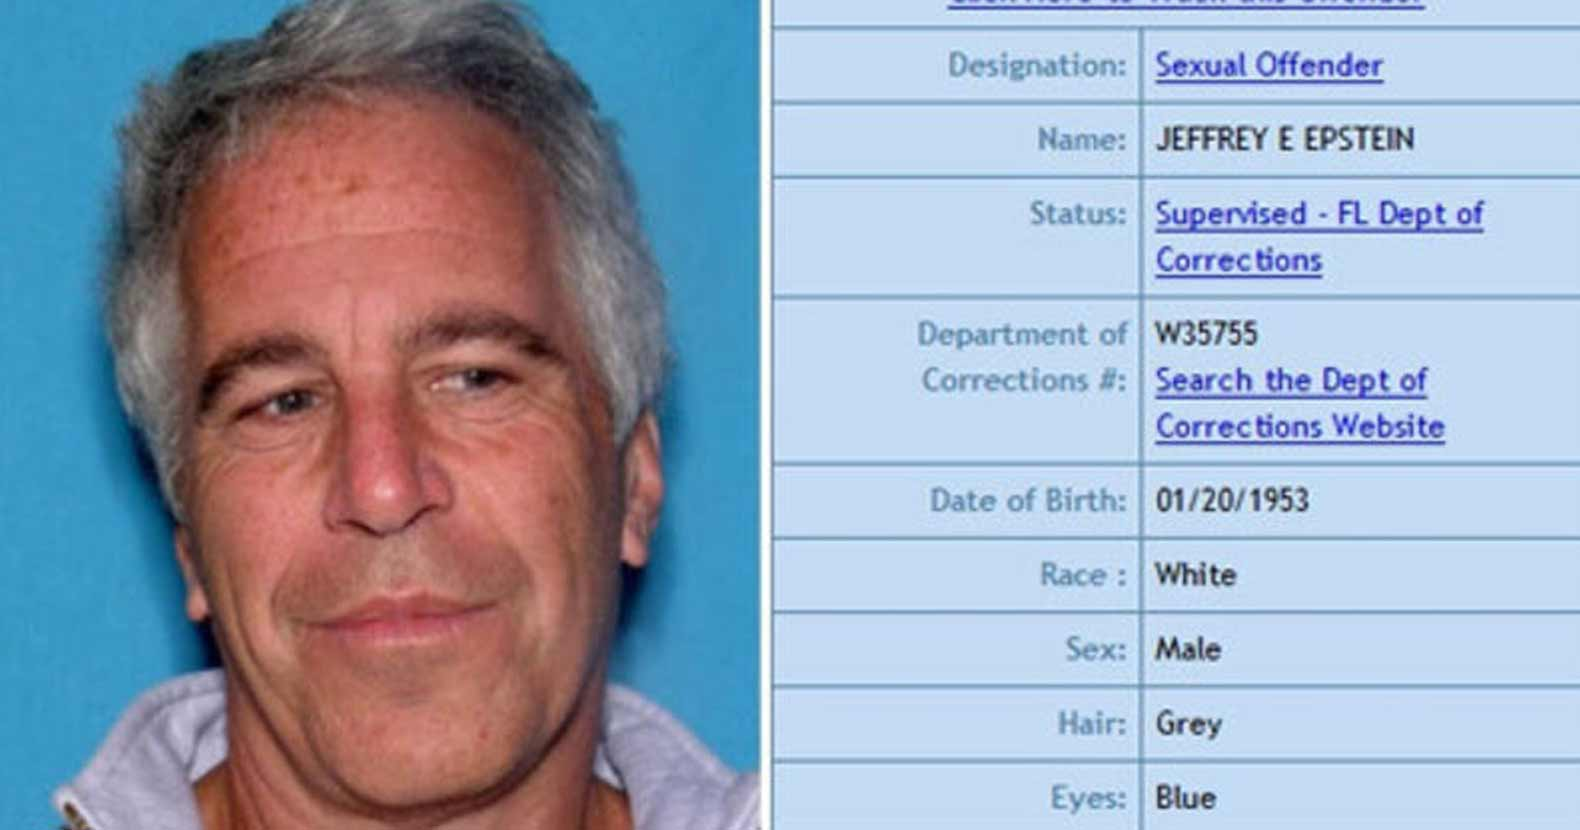 Judge Protects Billionaire Pedophile, Won't Allow Damning Evidence in Child Rape Trial